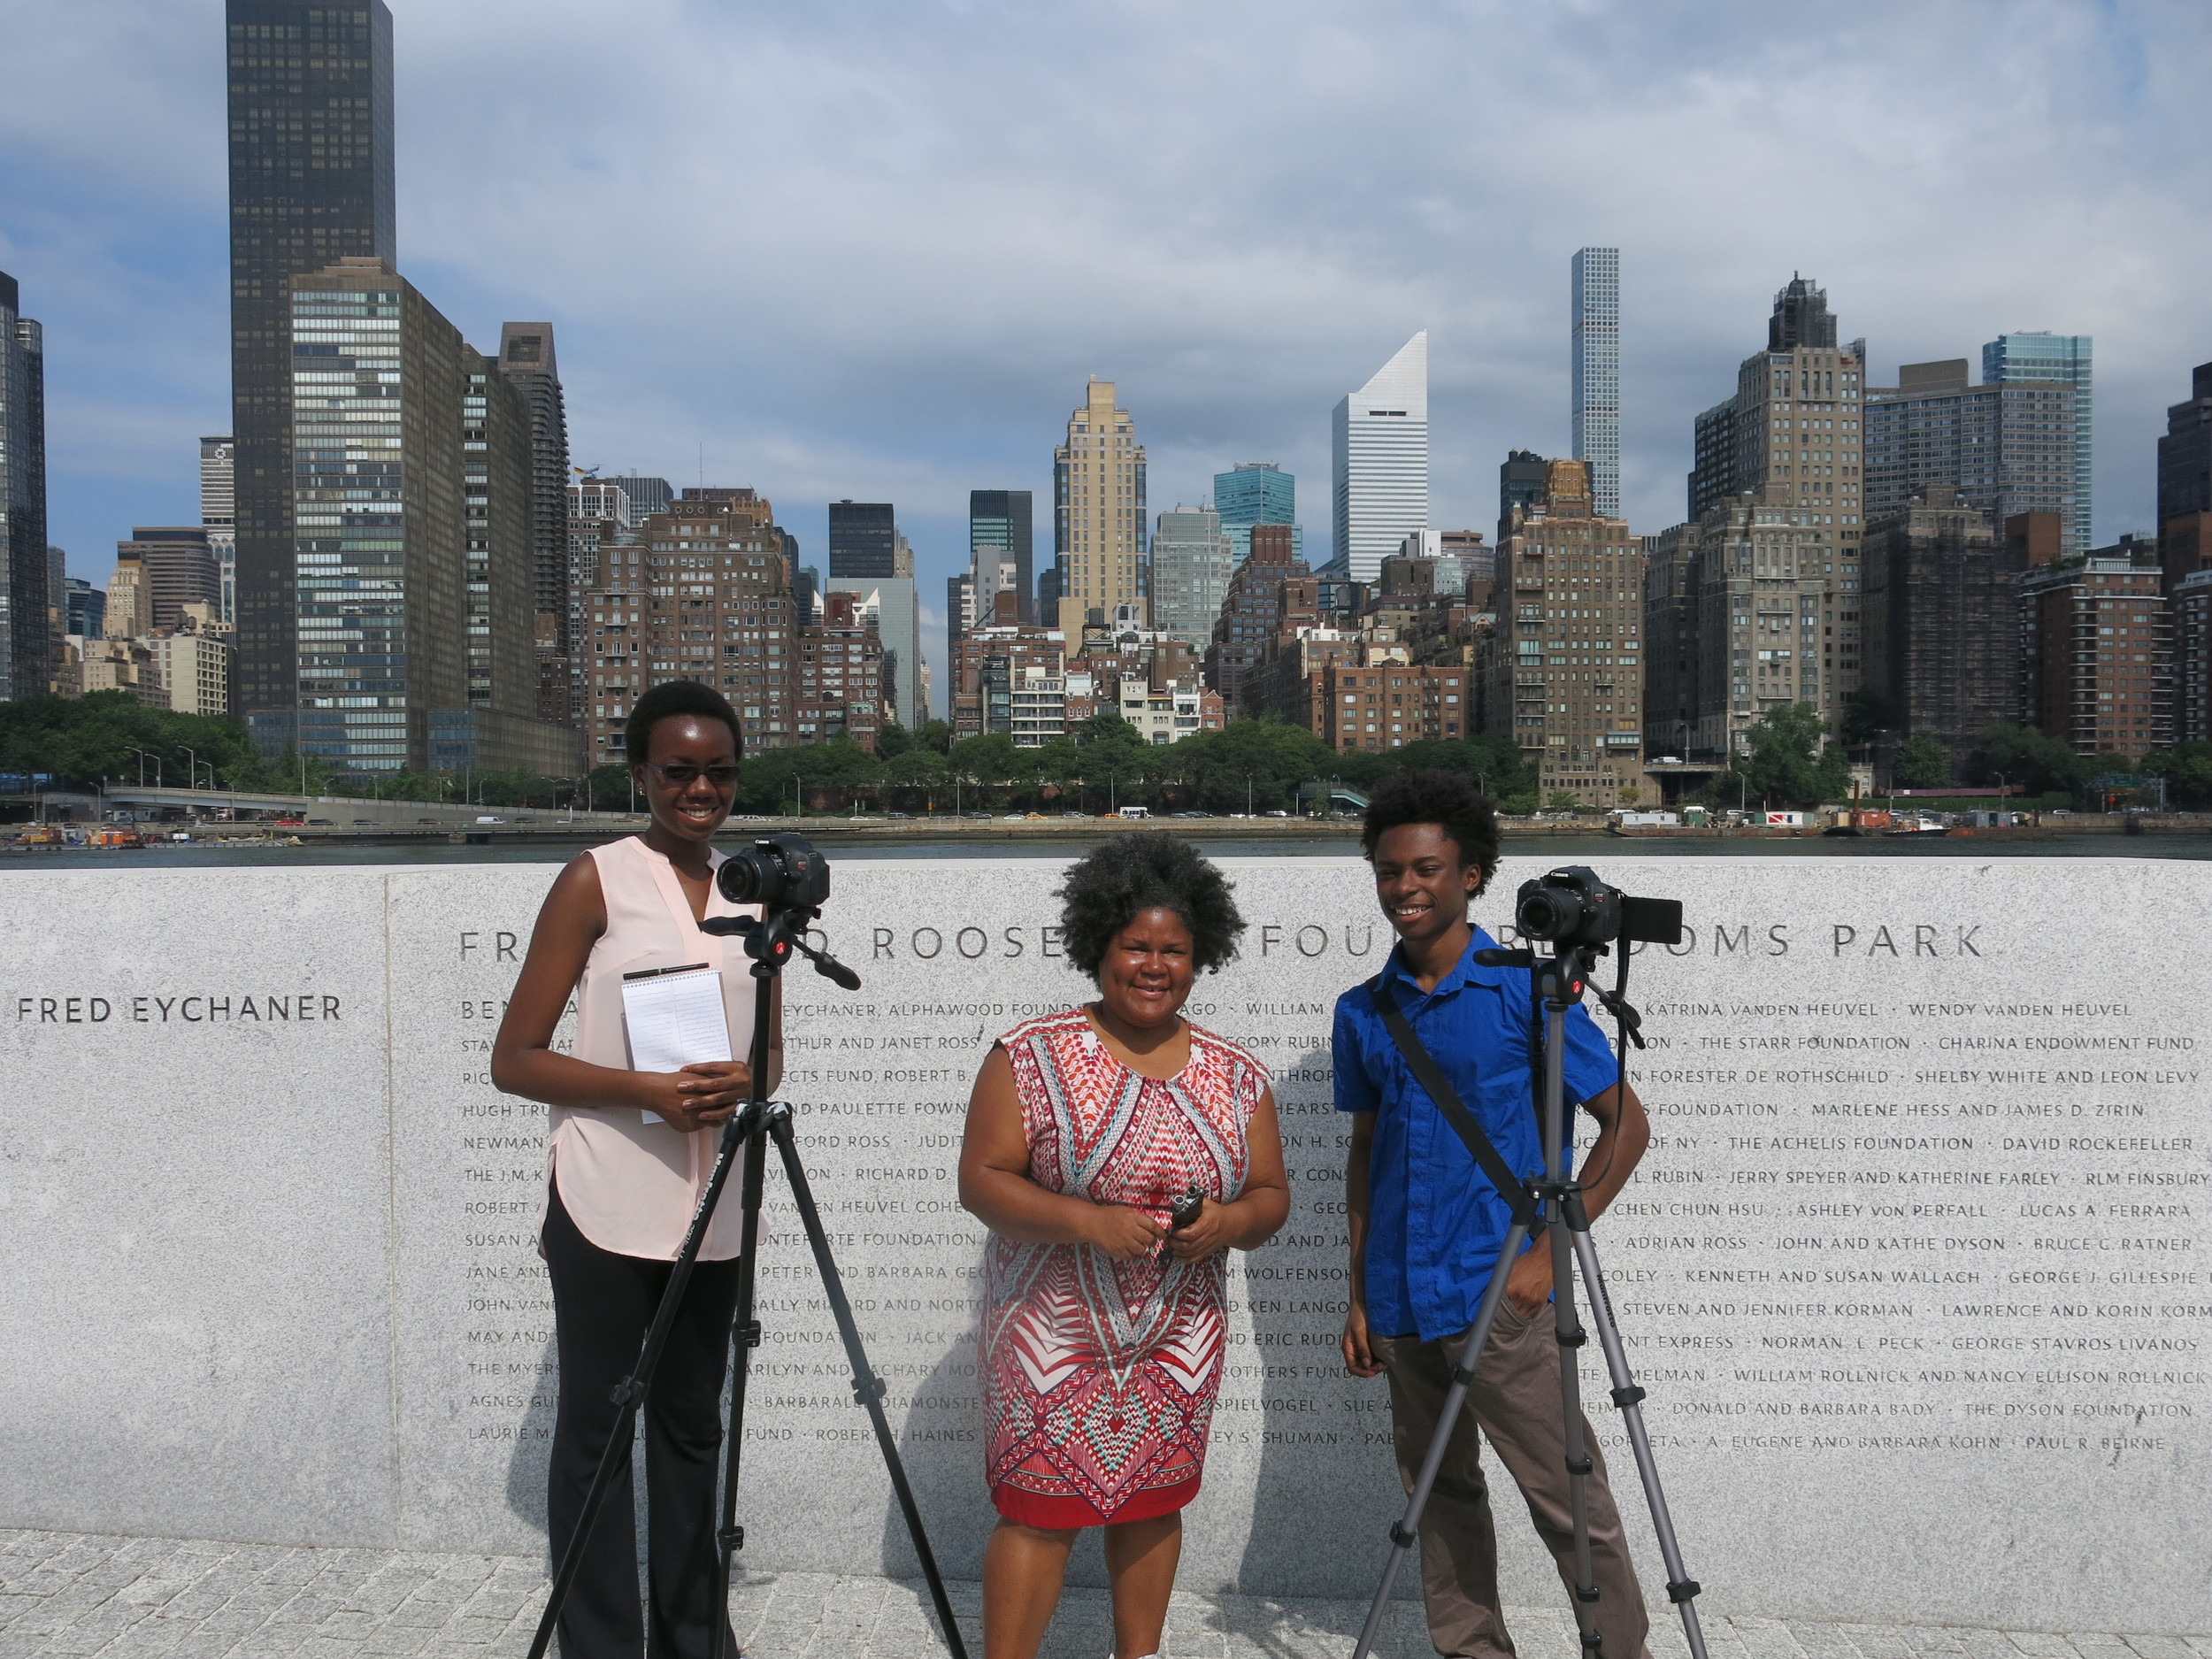 Interns Marie-Therese Ghunney (left) and Isaiah Lee (right) are working with documentary filmmaker Katherine Cheairs (center) to document stories from older New Yorkers. The interns are members of Studio in a School's Bloomberg Arts & Culture Internship Program.